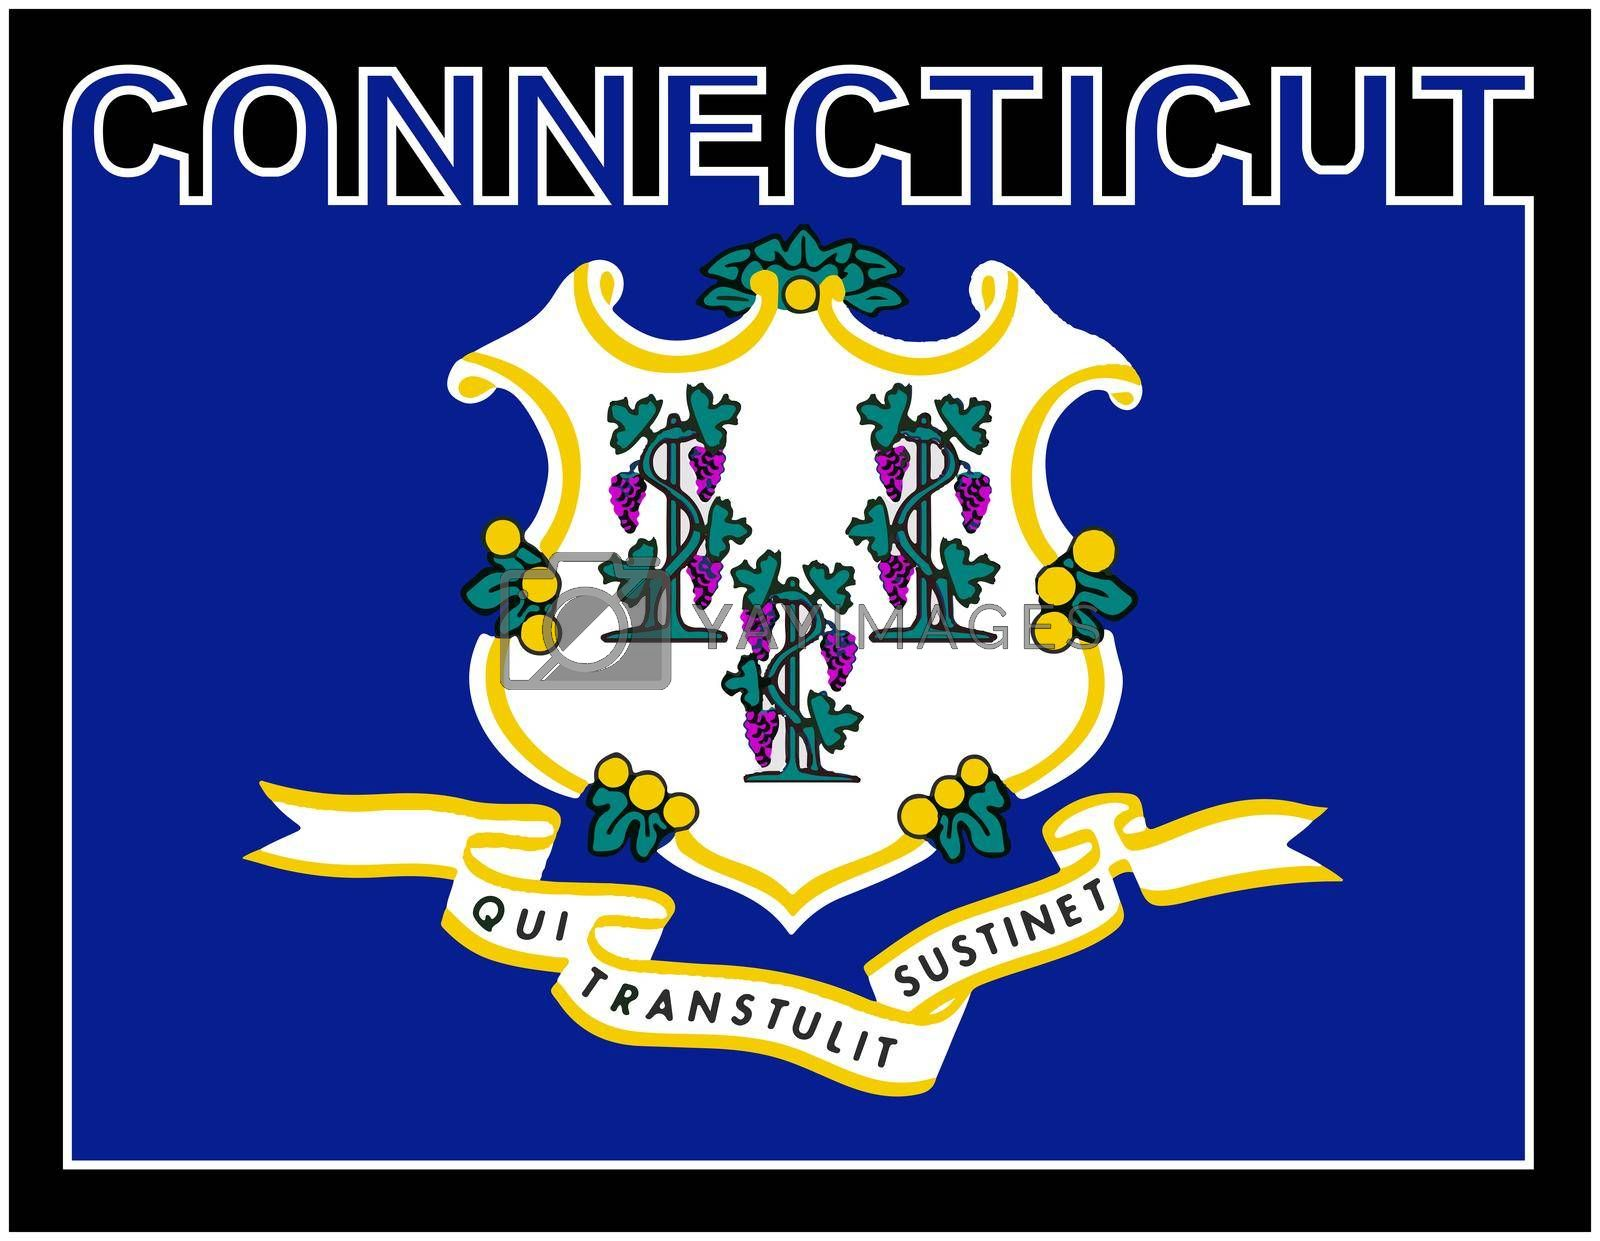 Connecticut state text in silhouette set over the state flag